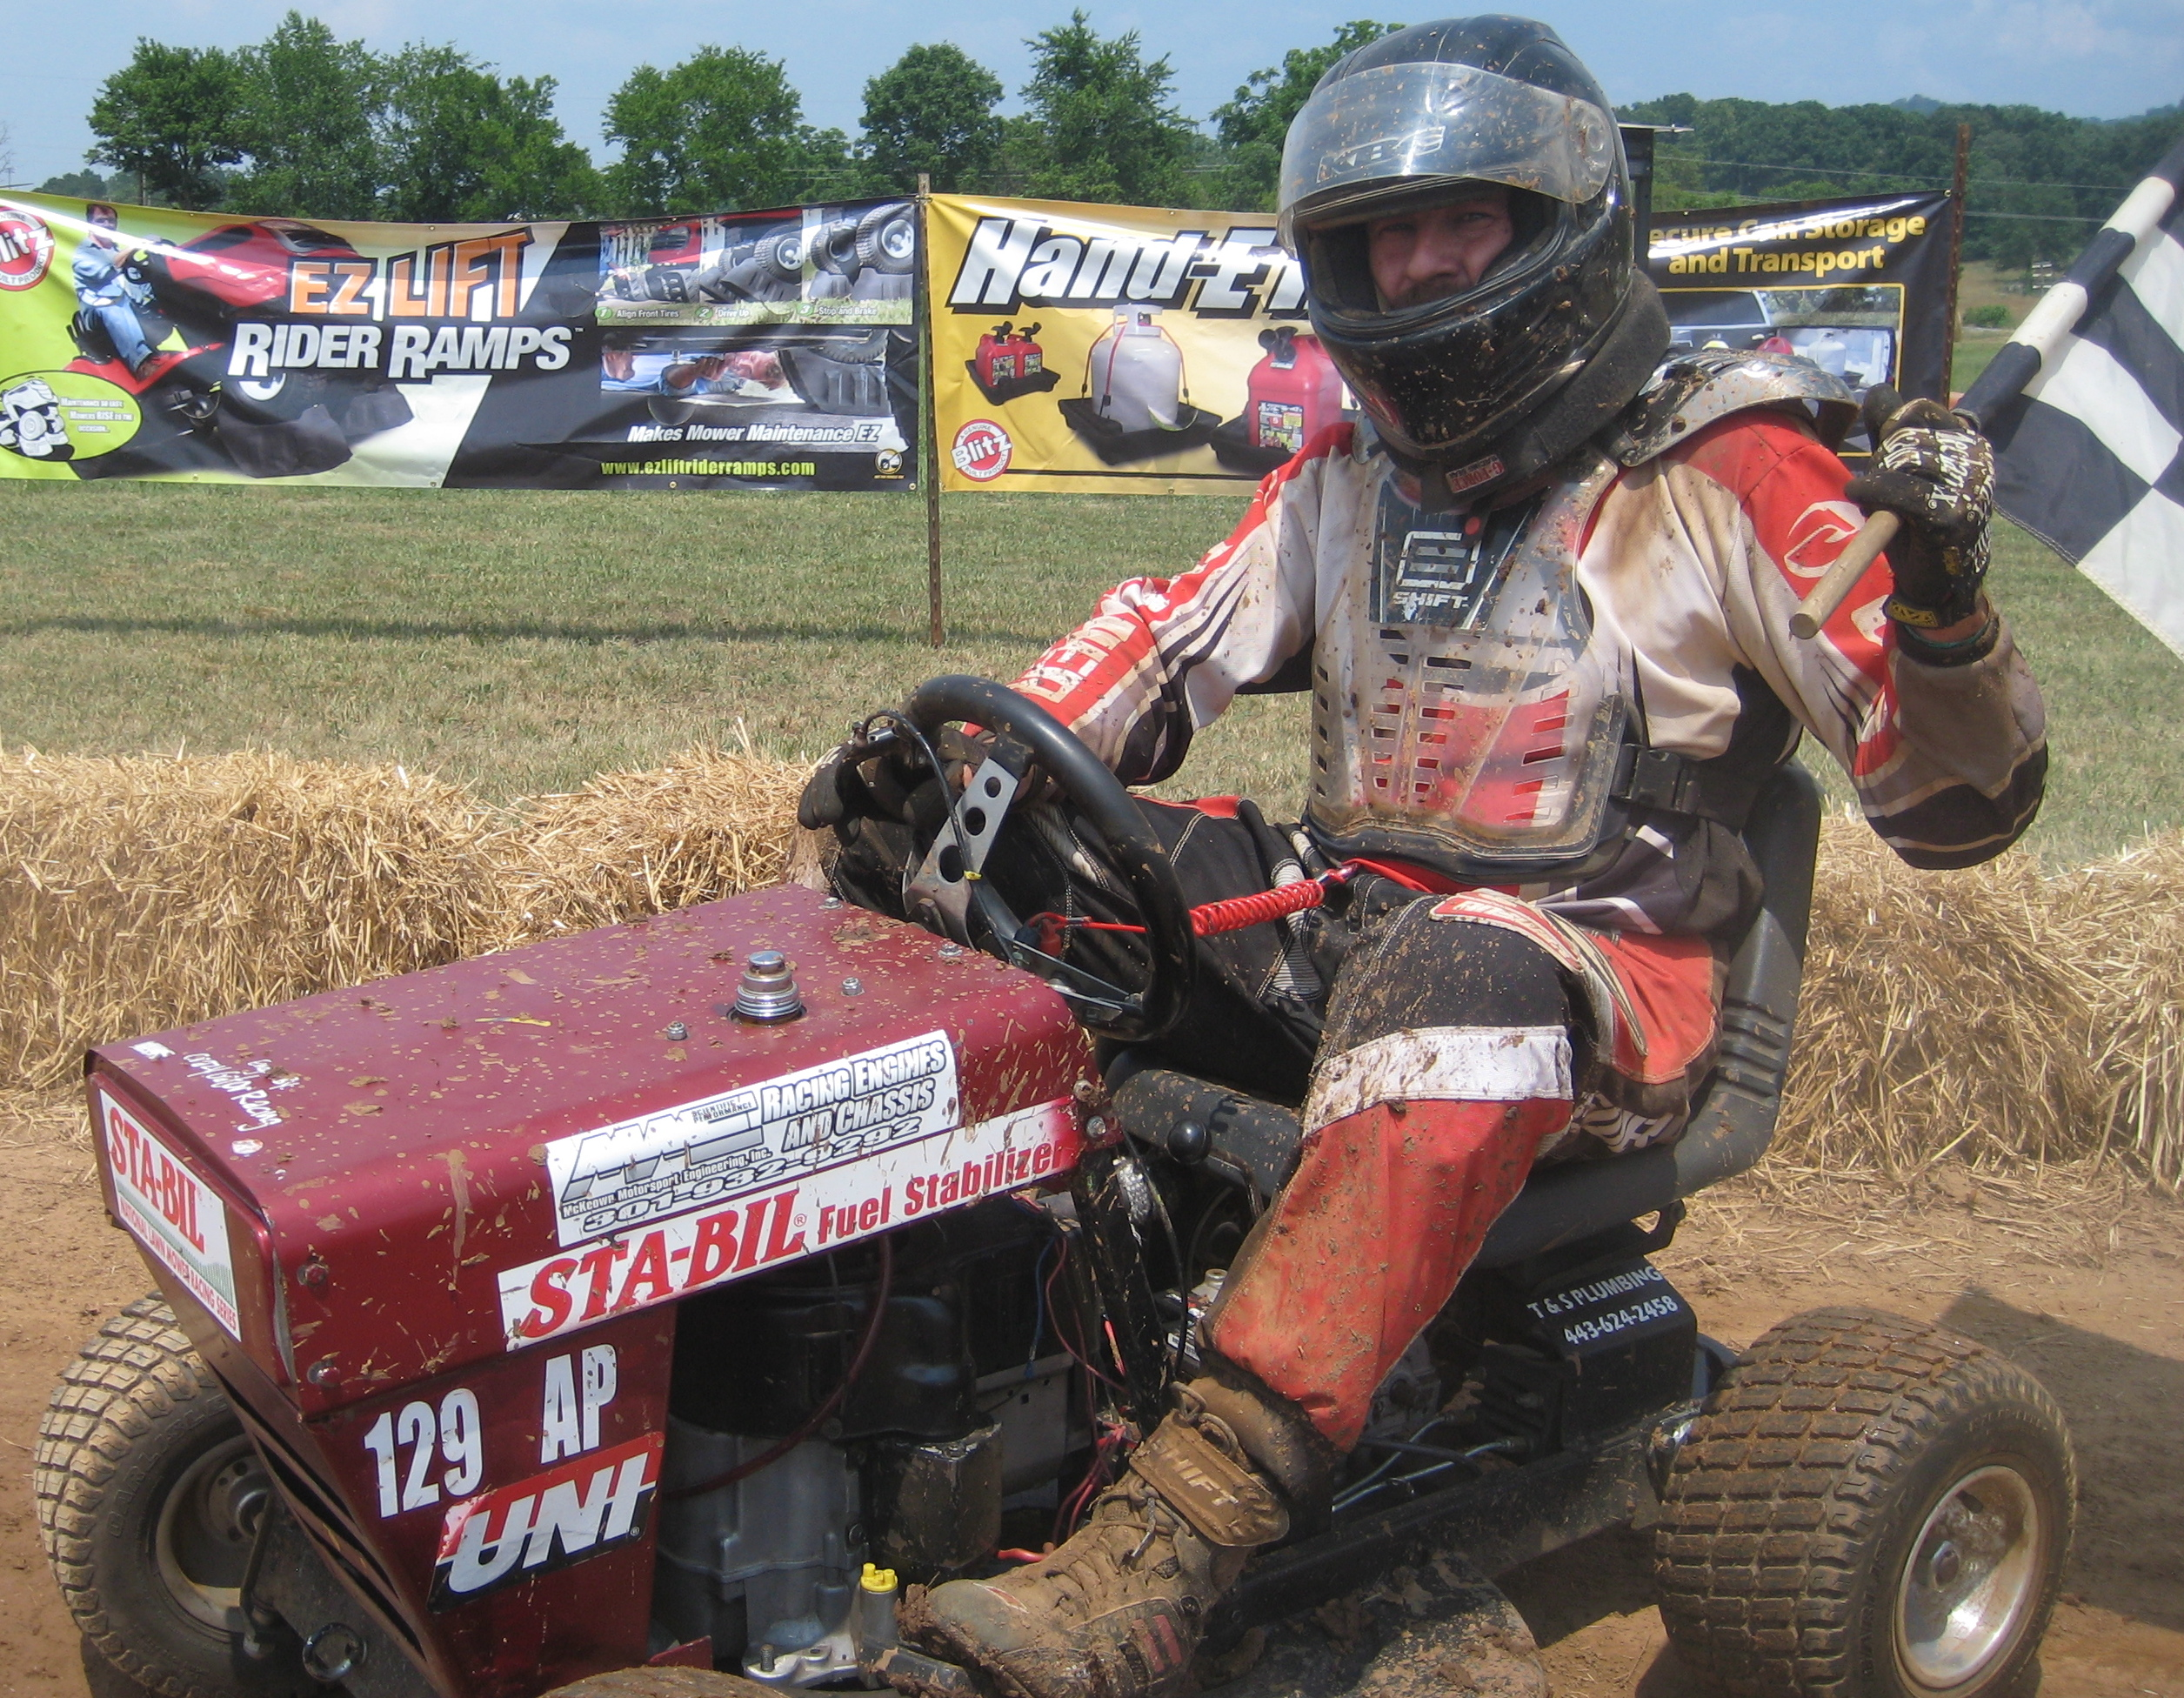 Gold Eagle S Engine Answerman Powers World S Fastest Lawn Mower To Maryland For Sta Bil National Lawn Mower Racing Series